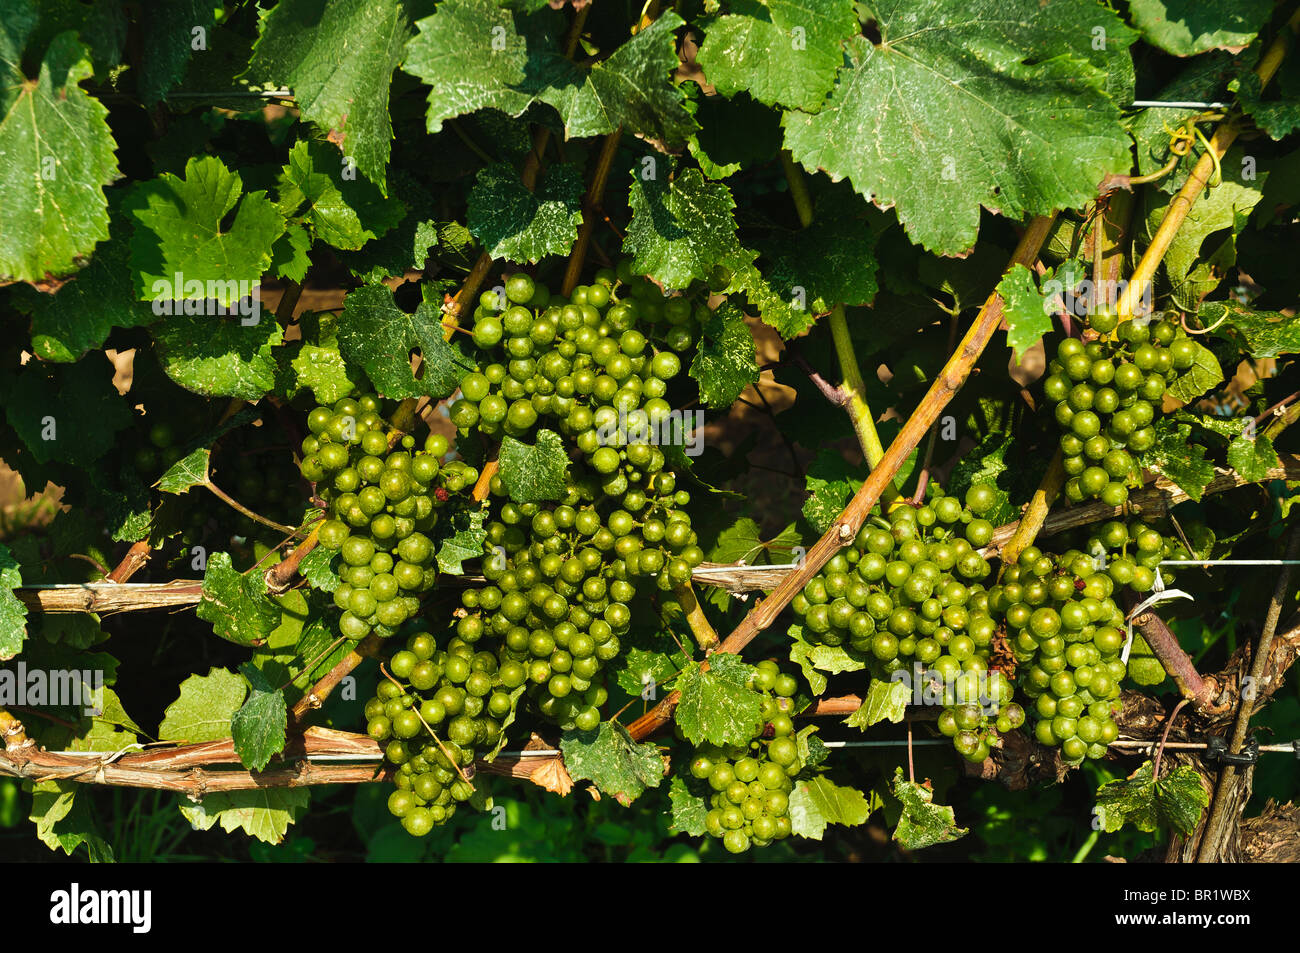 Green Grapes on vines in a Vineyard in Beamsville, Ontario Canada - Stock Image